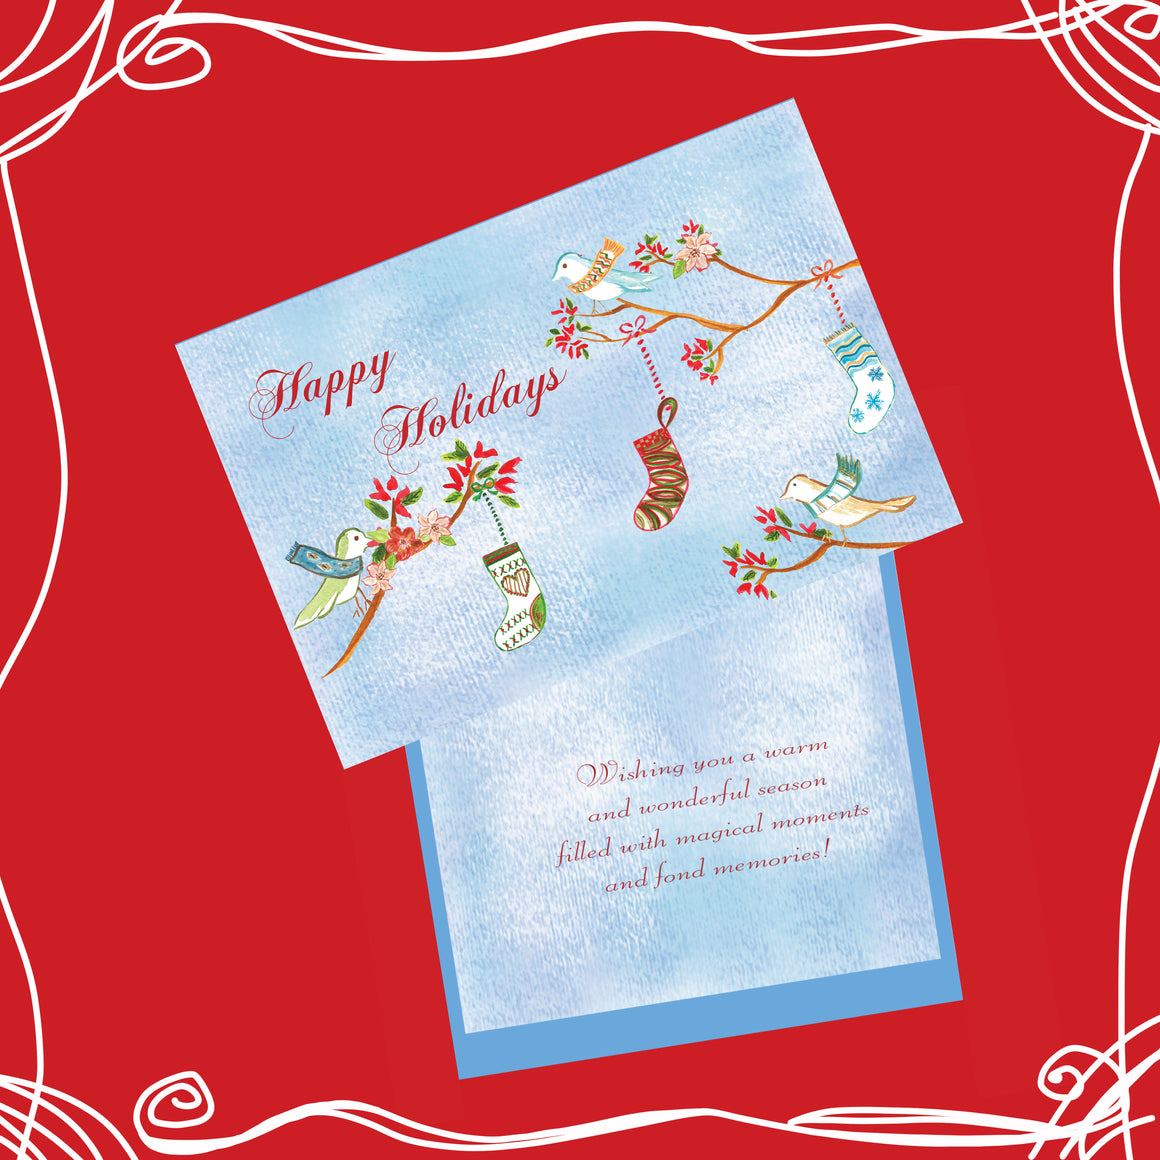 Happy Holidays Birds Card Pack 50% OFF - Greeting Card - Dreams After All